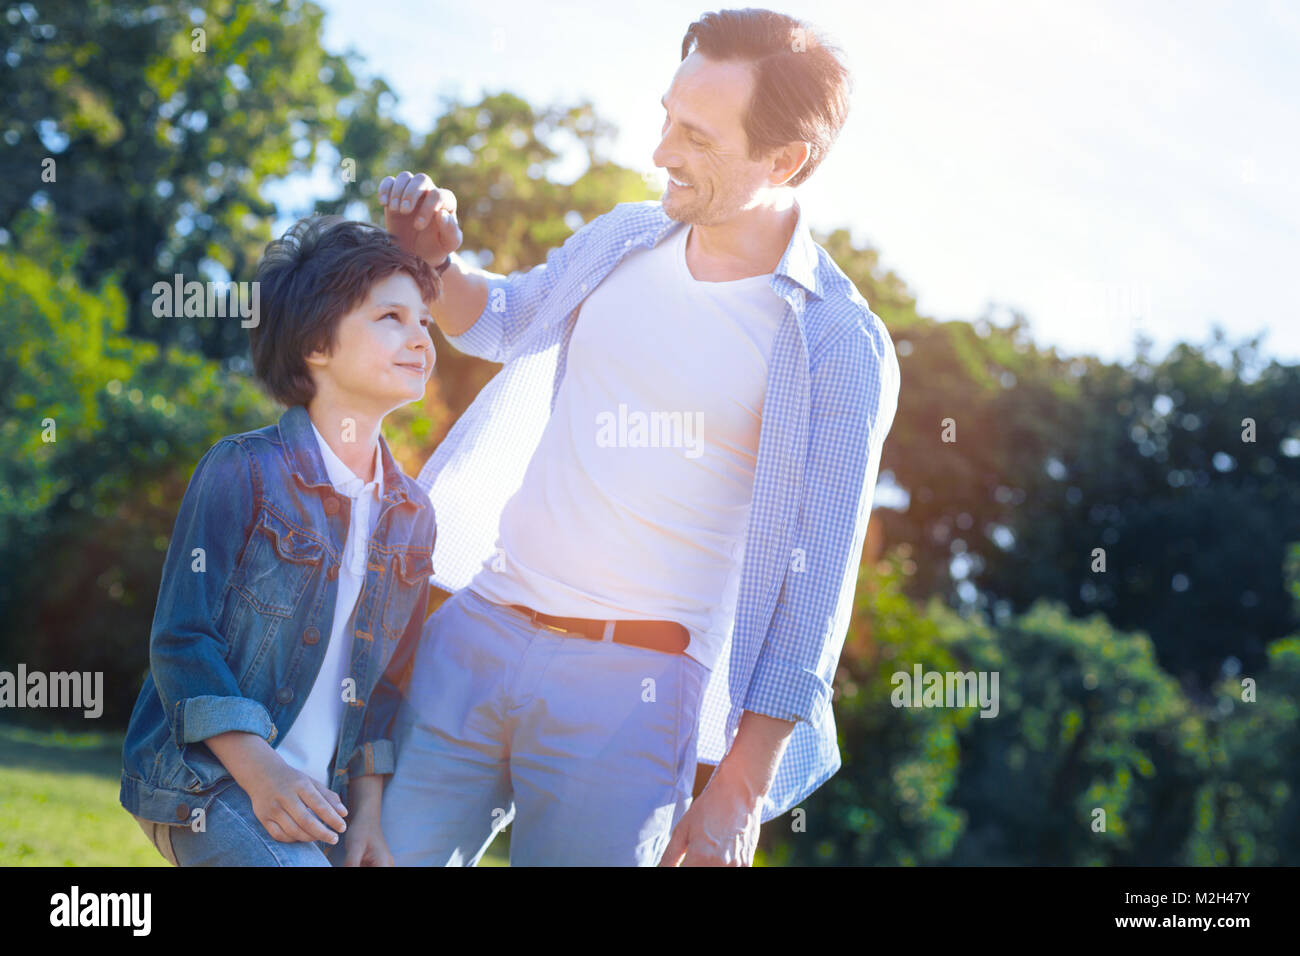 Cheerful father and son smiling to each other - Stock Image